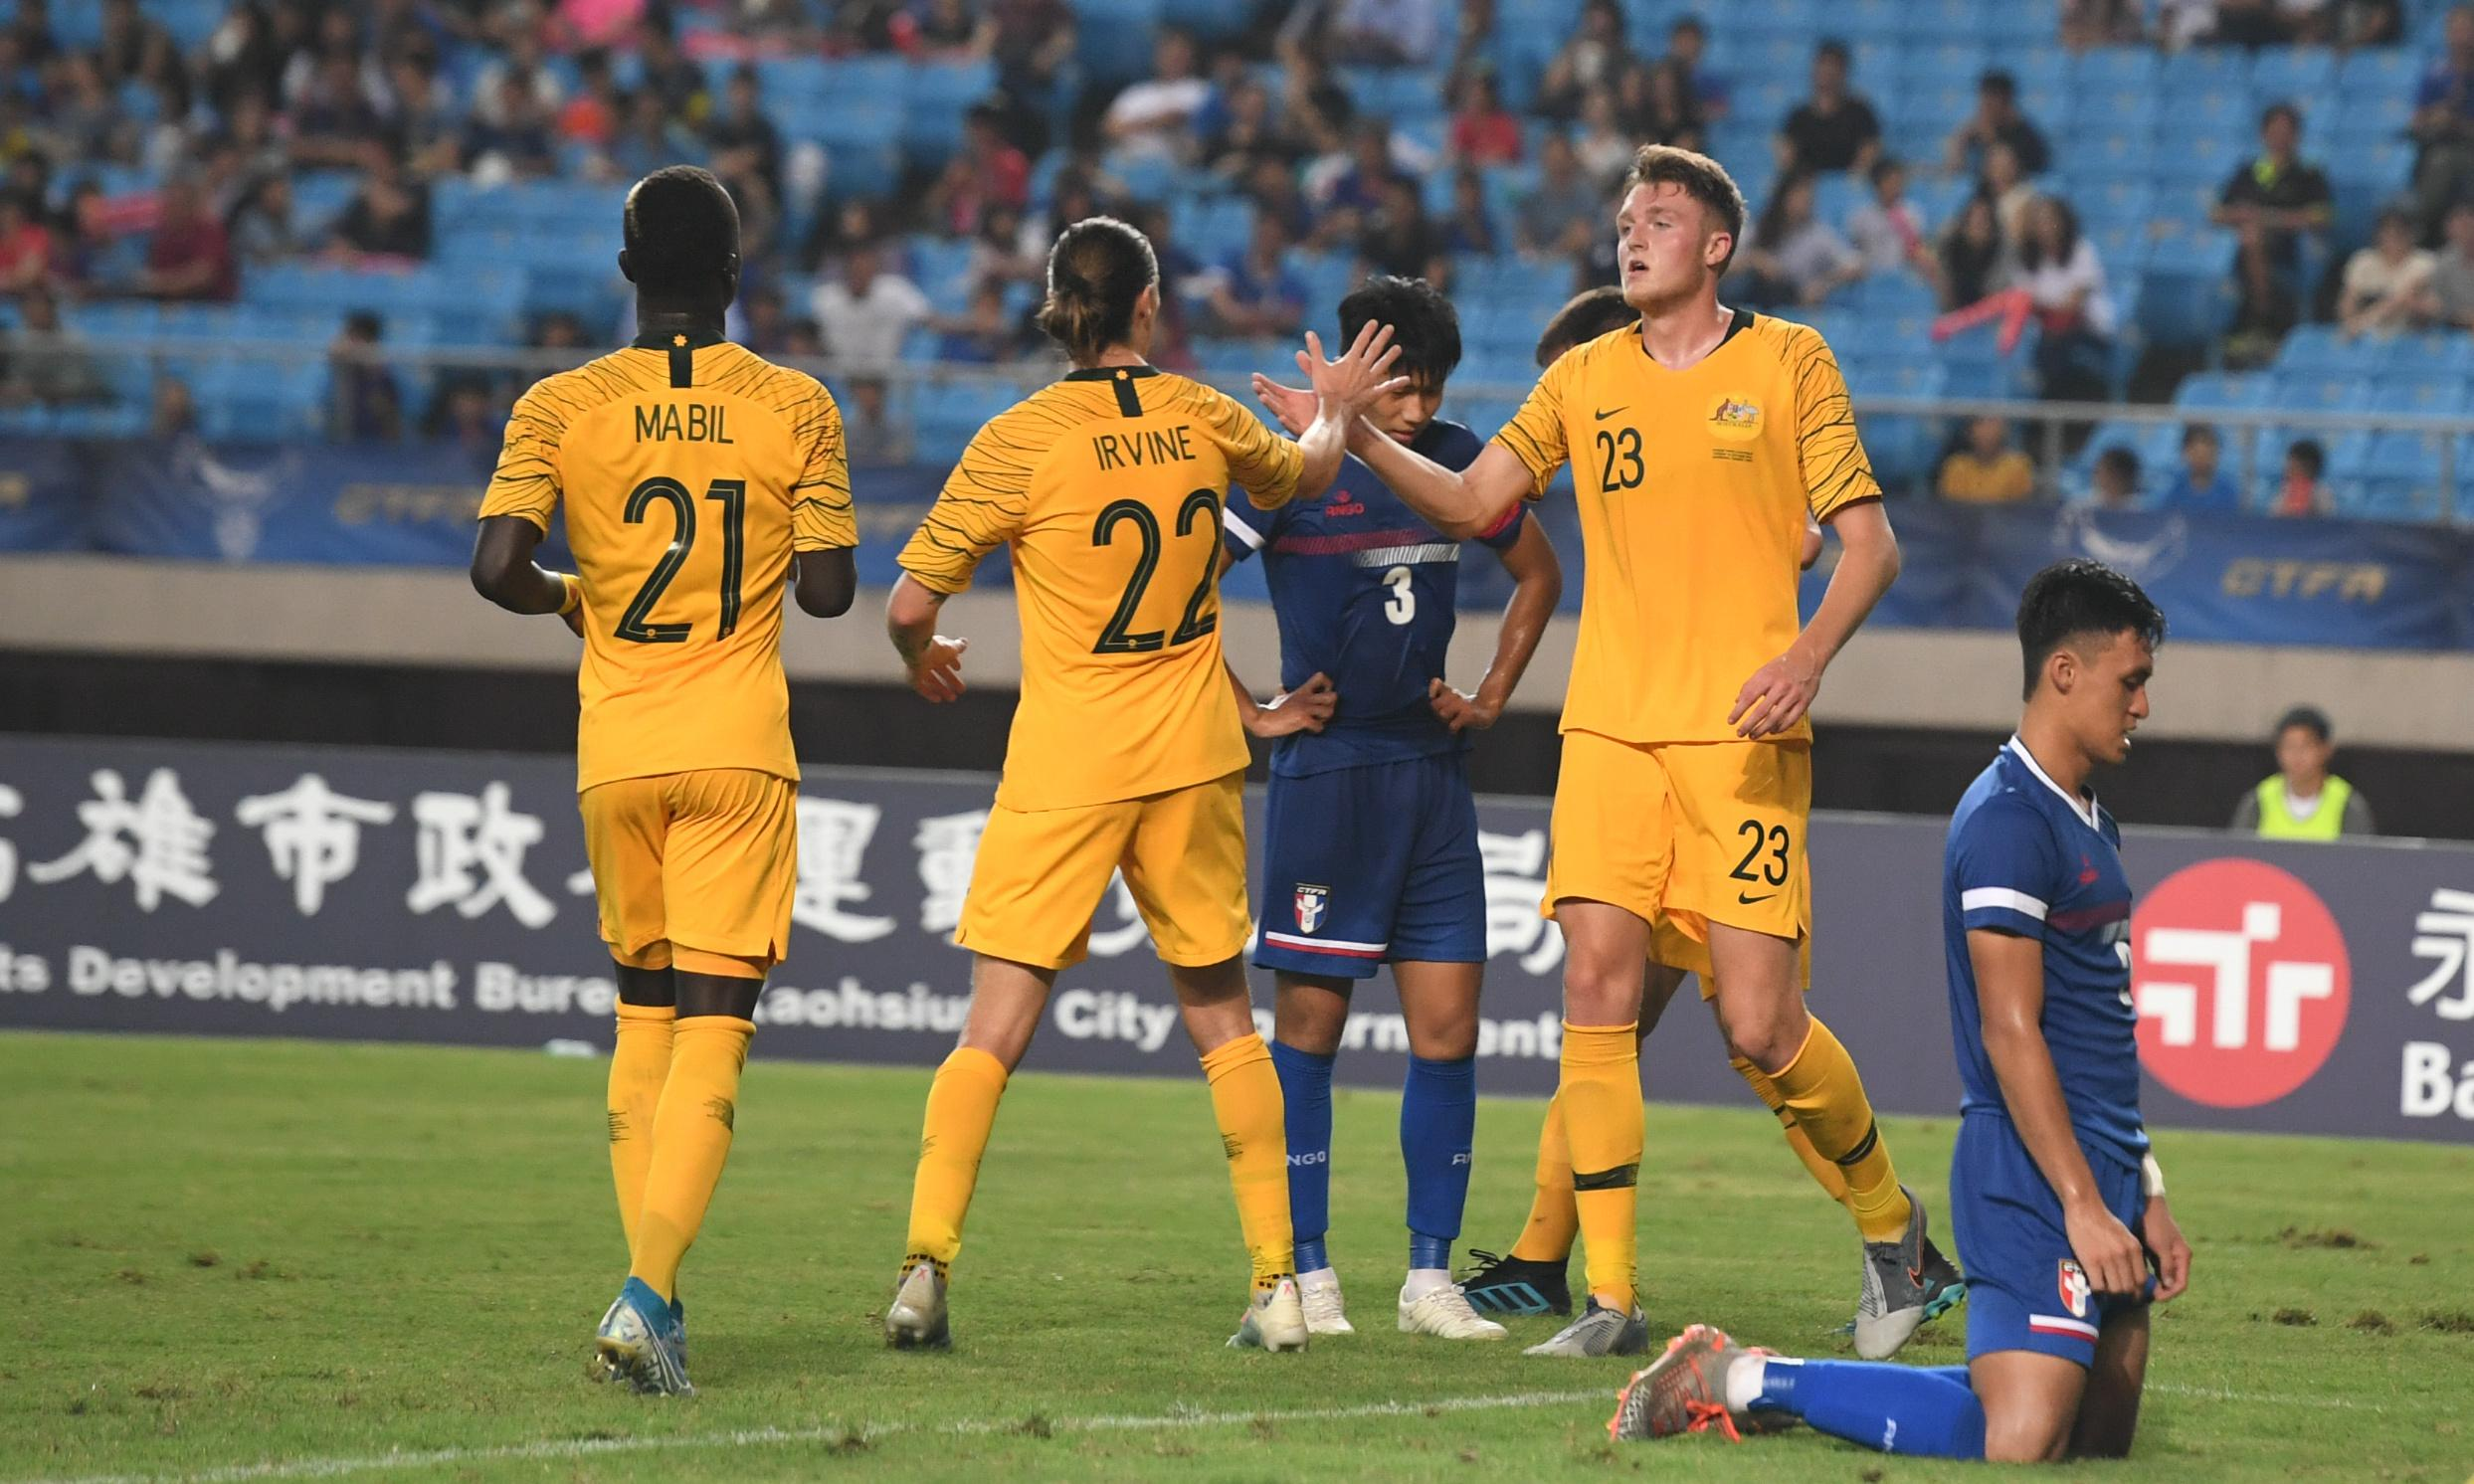 Socceroos emerge richer from World Cup qualifiers despite all-too-easy wins over poor opponents